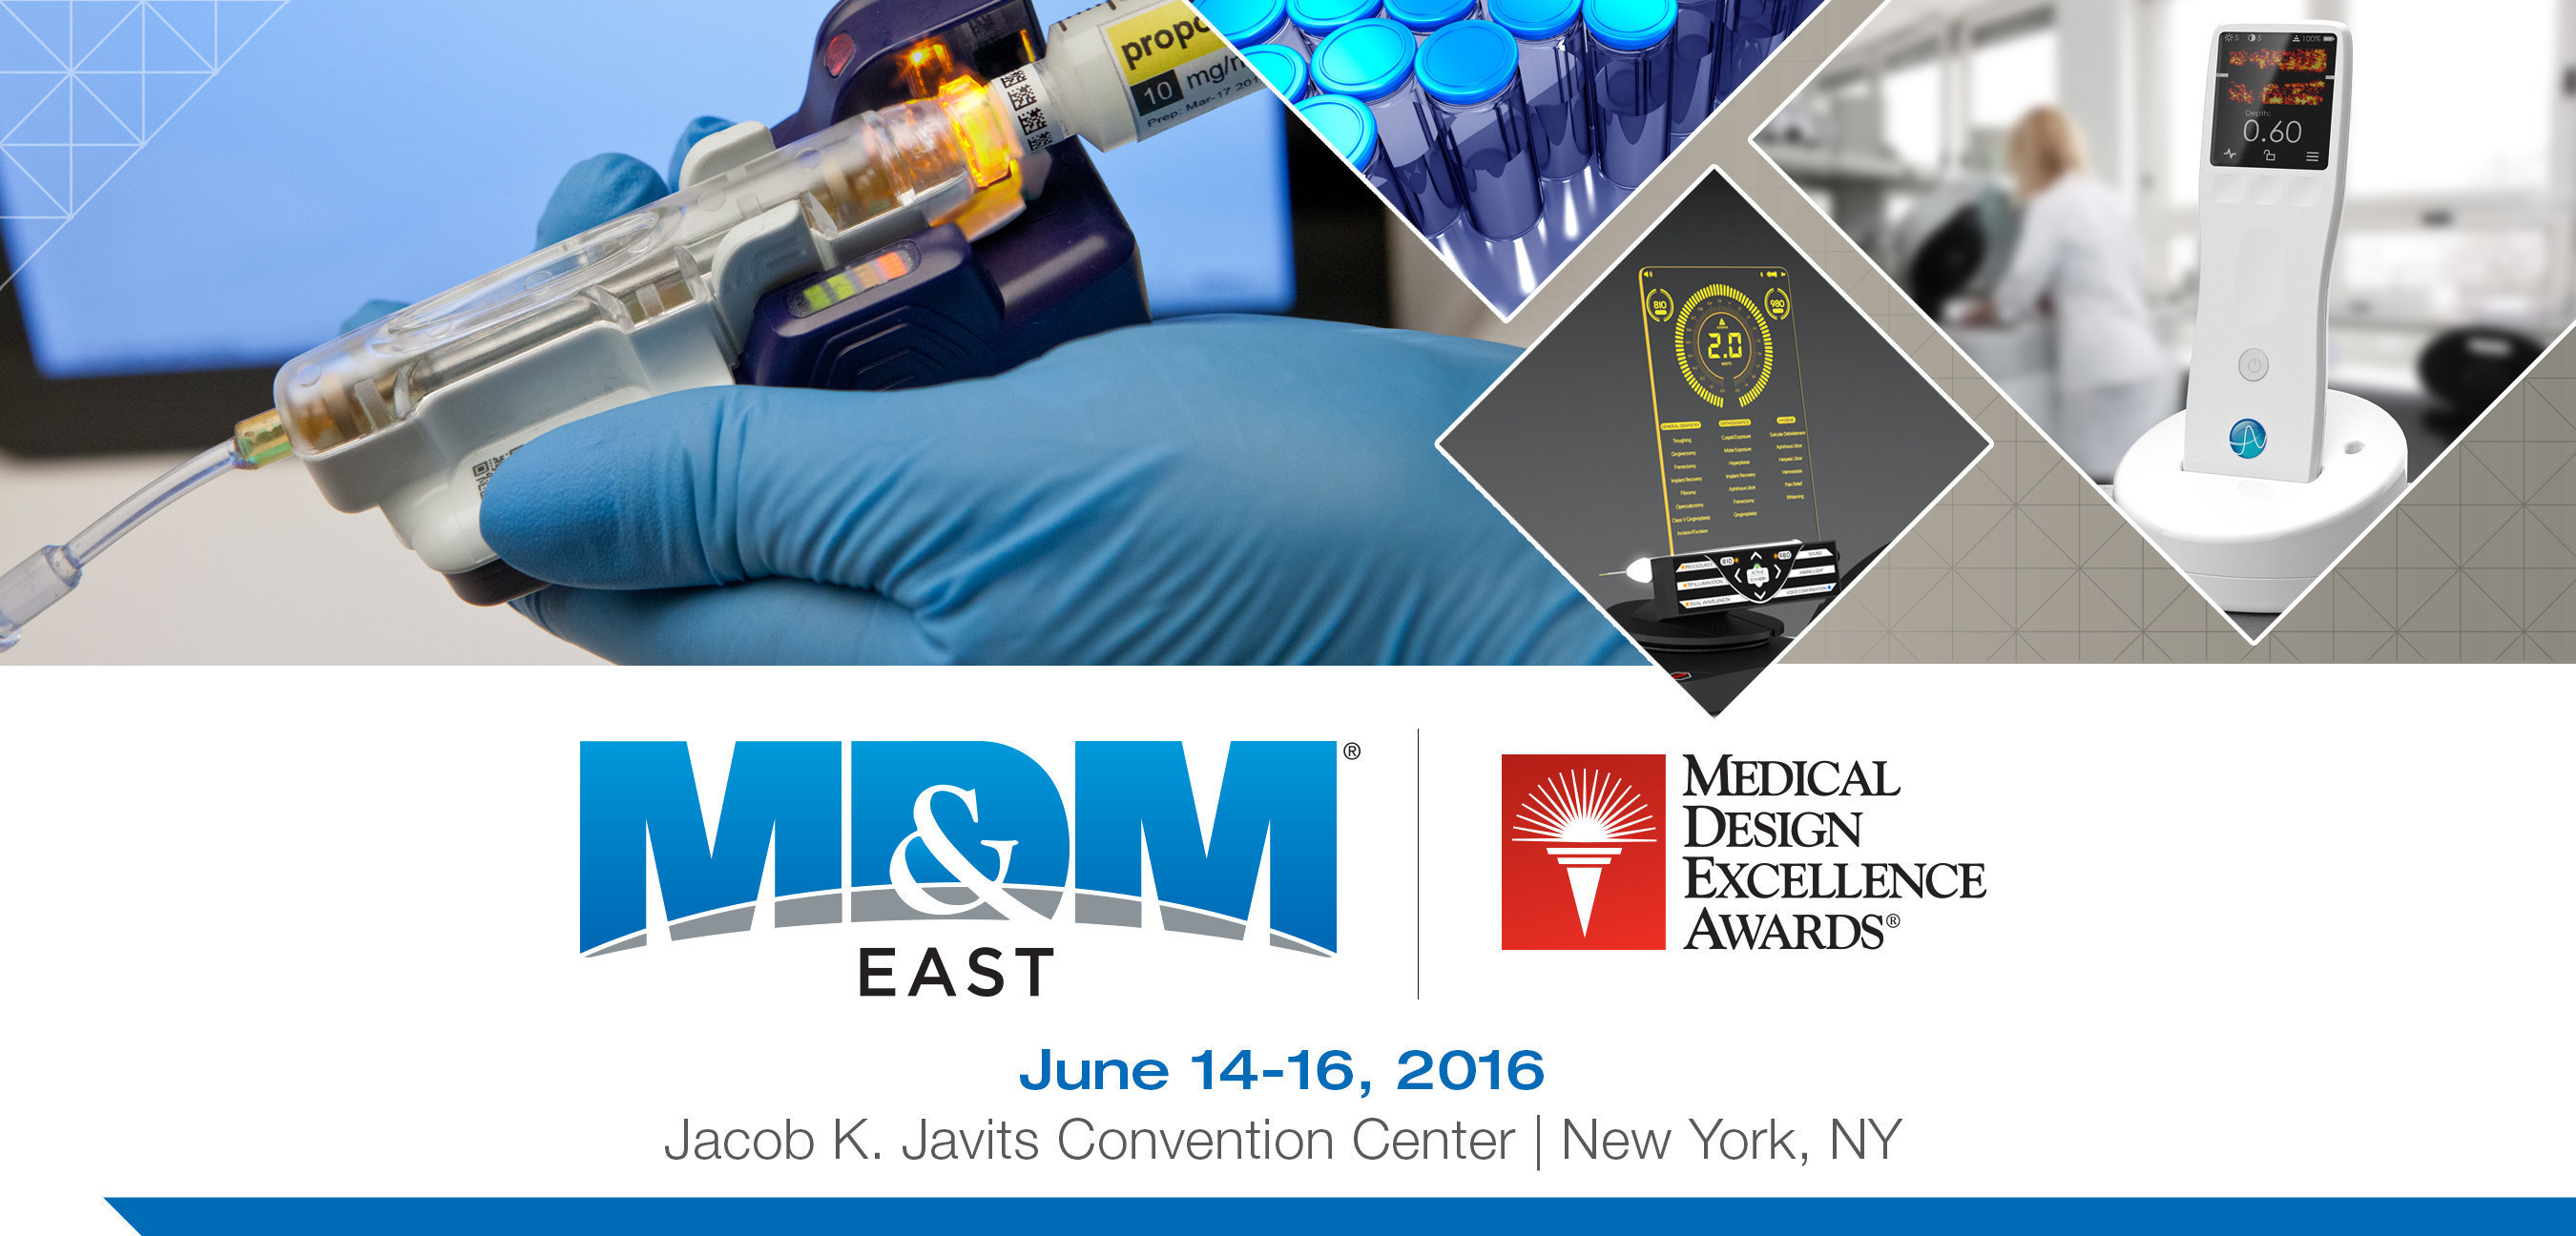 27 innovative Medtech Products Recognized as Winners at the 2016 Medical Design Excellence Awards